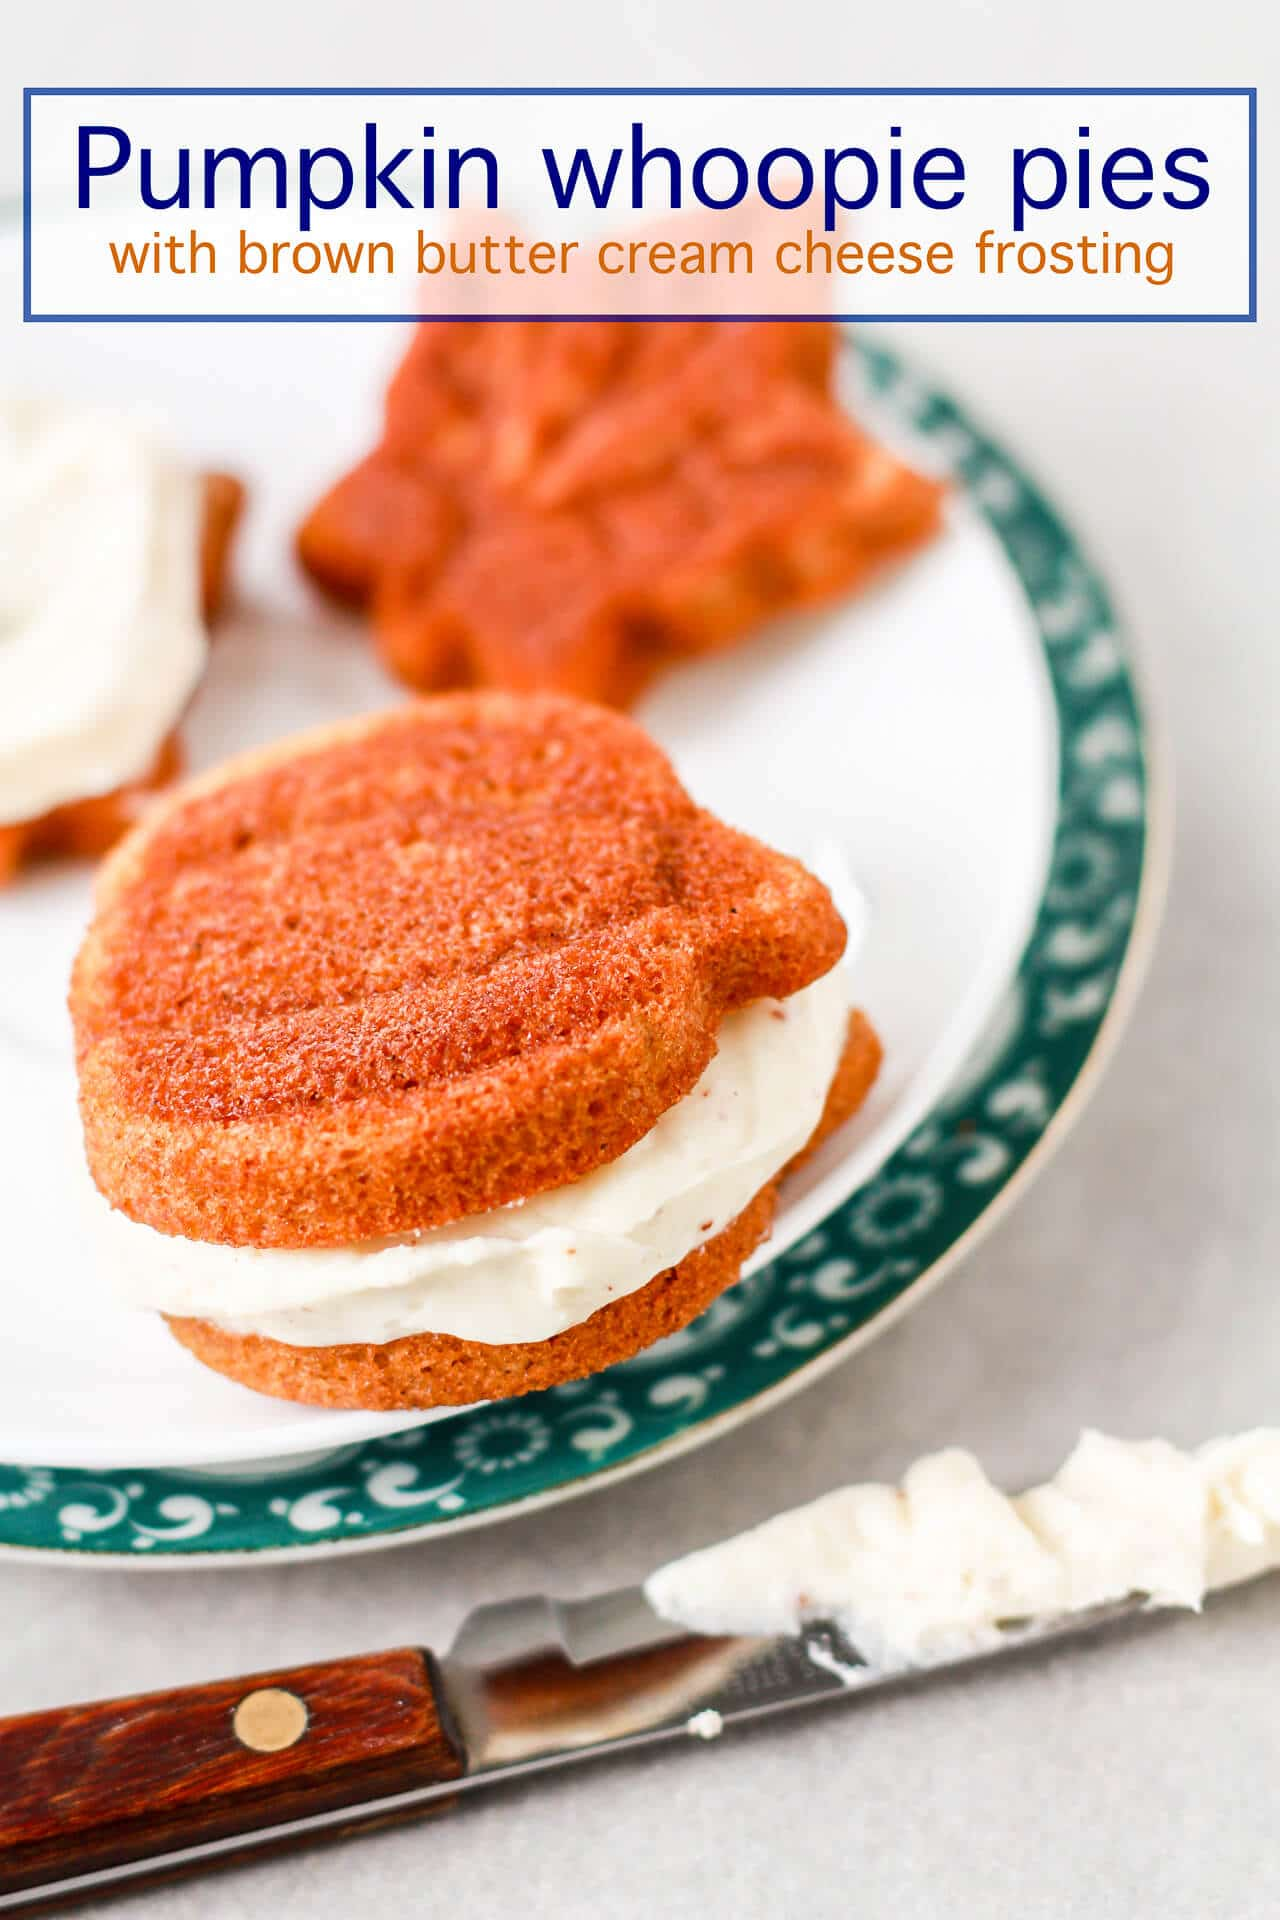 pumpkin whoopie pies with a brown butter cream cheese filling baked in the shape of pumpkins and leaves.